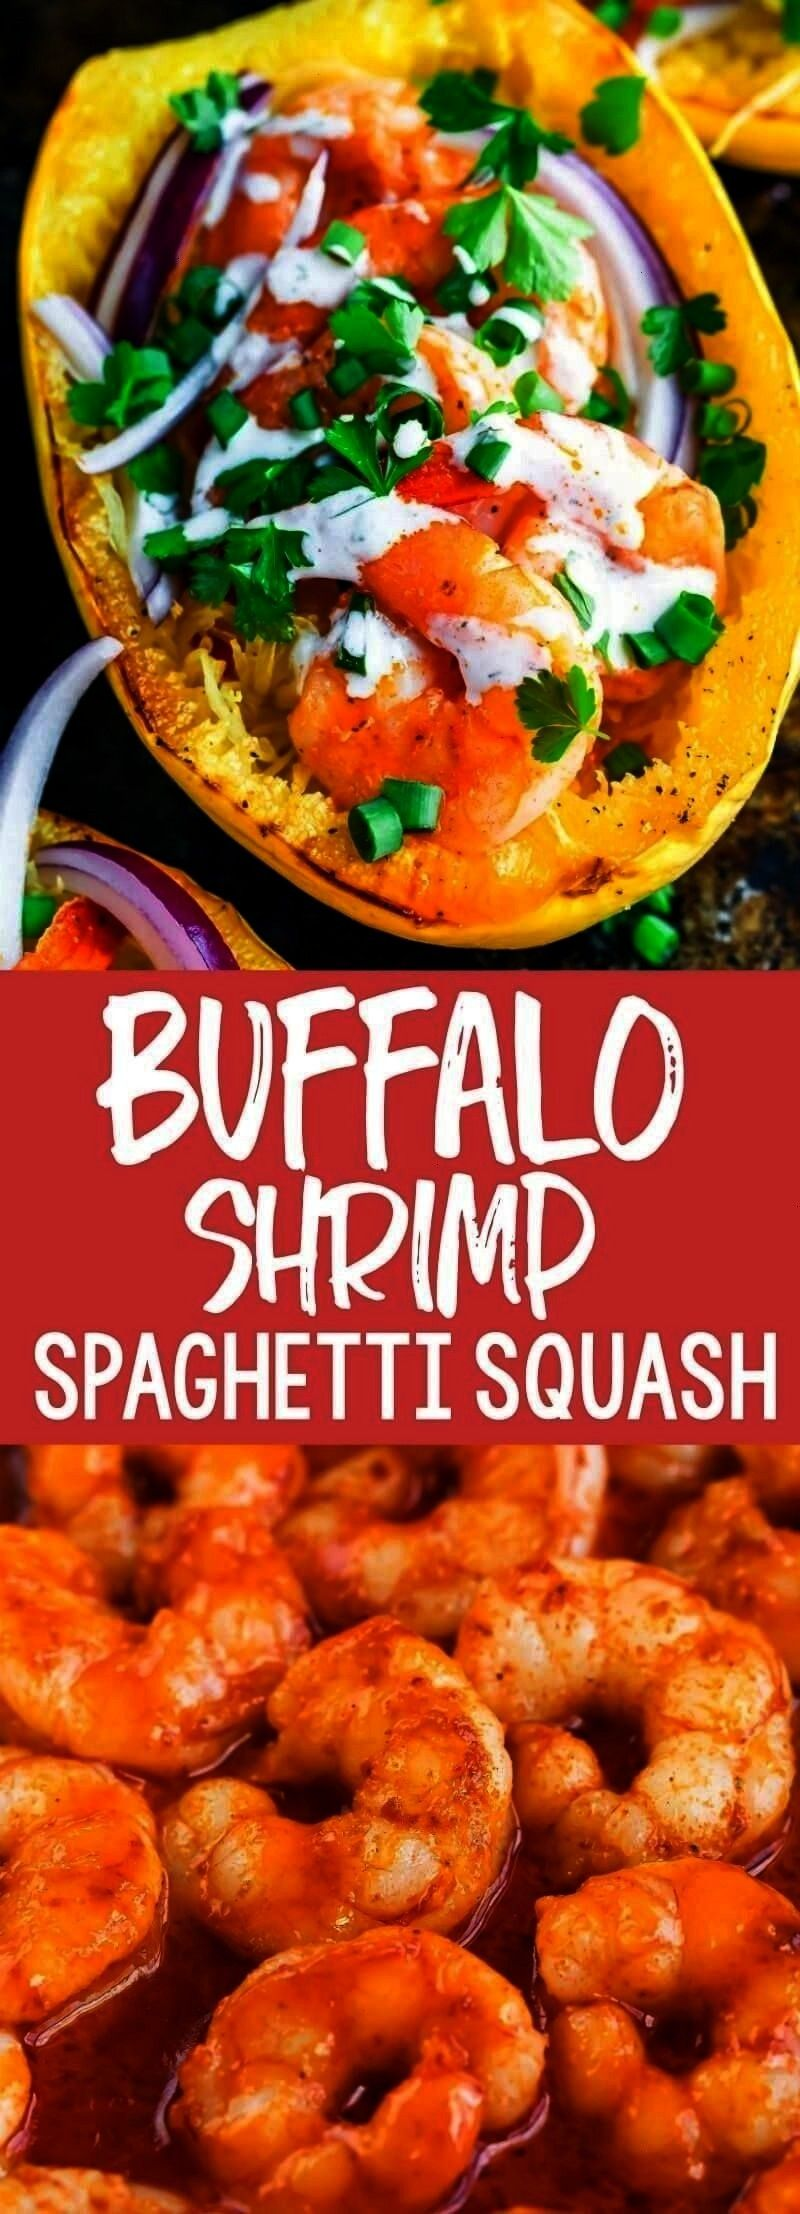 #delicious buffalo #spaghettisquash #dinnerbuffalo #buffaloshrimp #shrimpshrimp #pescatarian #glutenfree #gloriously #spaghetti #compliant #dressing #whole30 #buffalo #seafood #shrimpSpaghetti Squash with Paleo Ranch Dressing This crazy delicious Buffalo Shrimp Spaghetti Squash with Paleo Ranch Dressing is Whole30 compliant and gloriously gluten-free. Love it so! Buffalo Shrimp Spaghetti Squash with Paleo Ranch Dressing This crazy delicious Buffalo Shrimp Spaghetti Squash with Paleo Ranch DresSS #buffaloshrimp